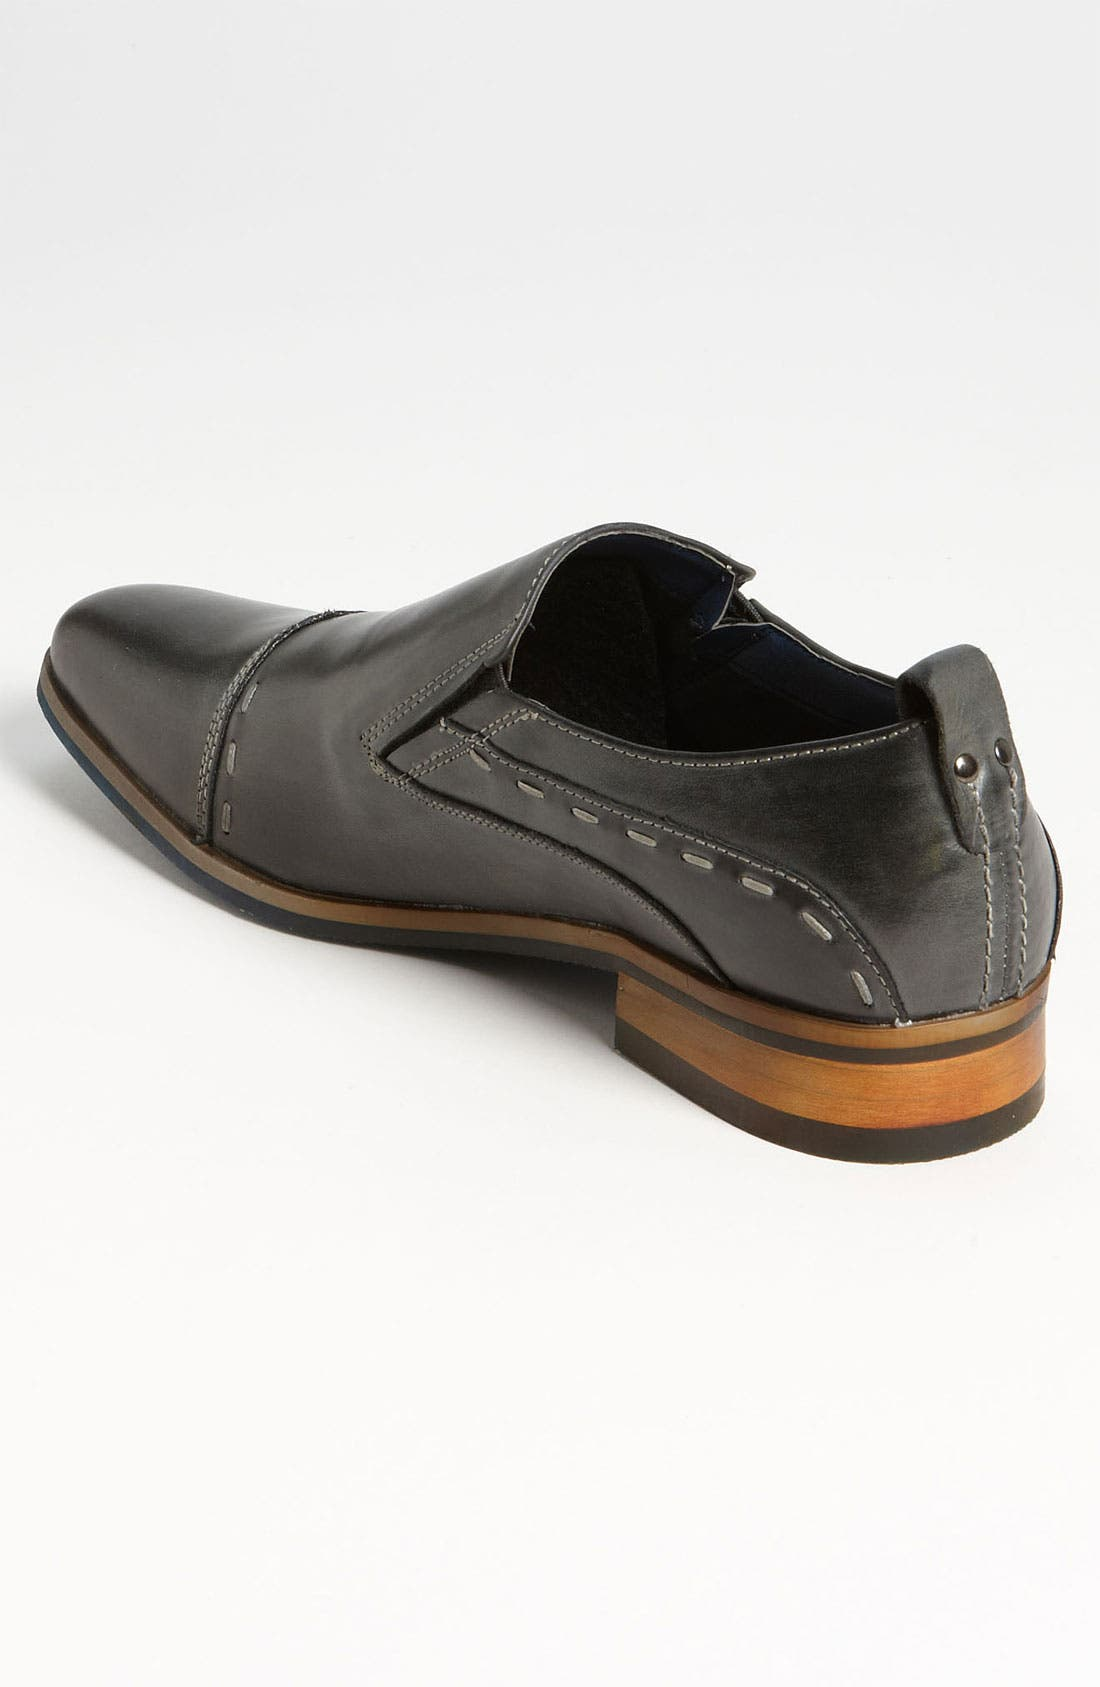 Alternate Image 2  - Steve Madden 'Caddee' Venetian Loafer